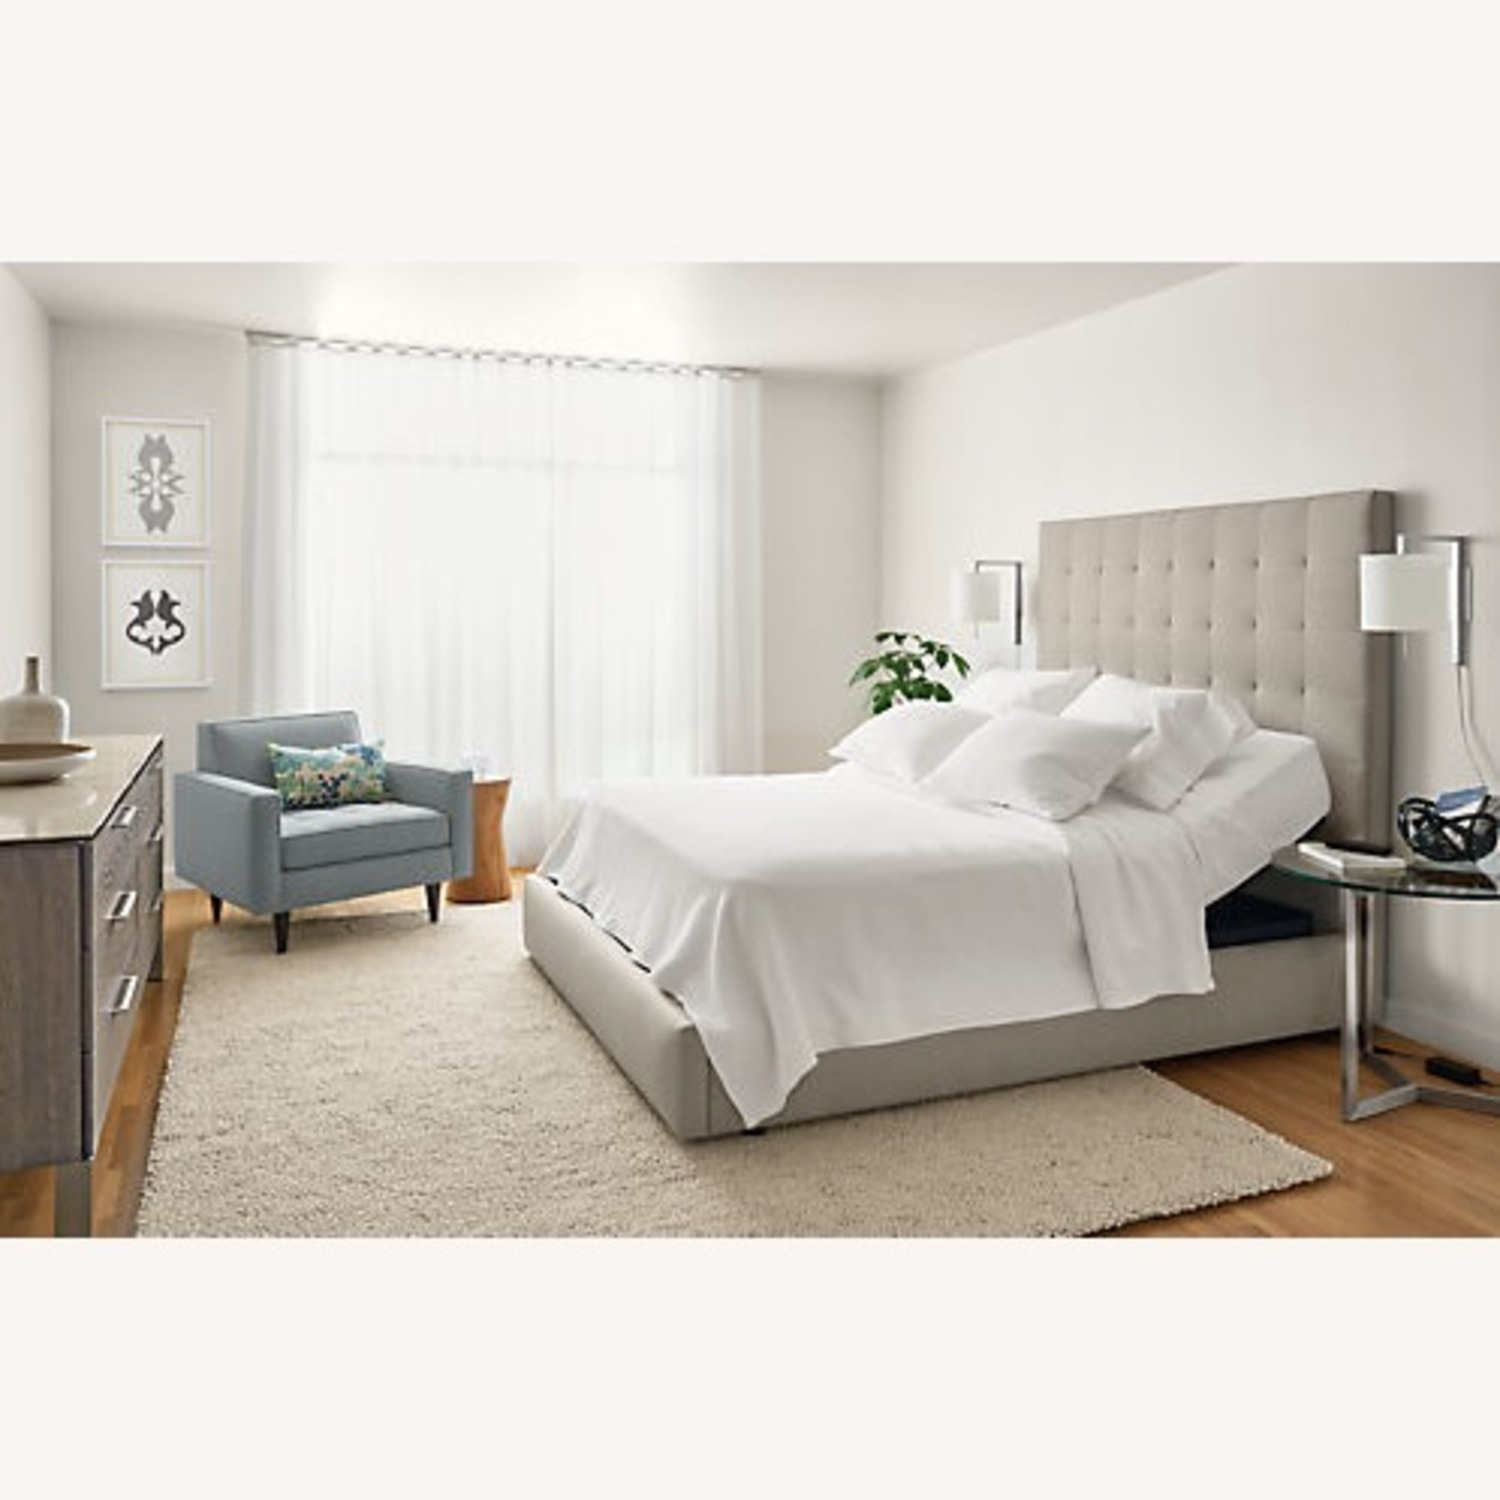 Room & Board Queen Size Light Grey Avery Bed - image-6